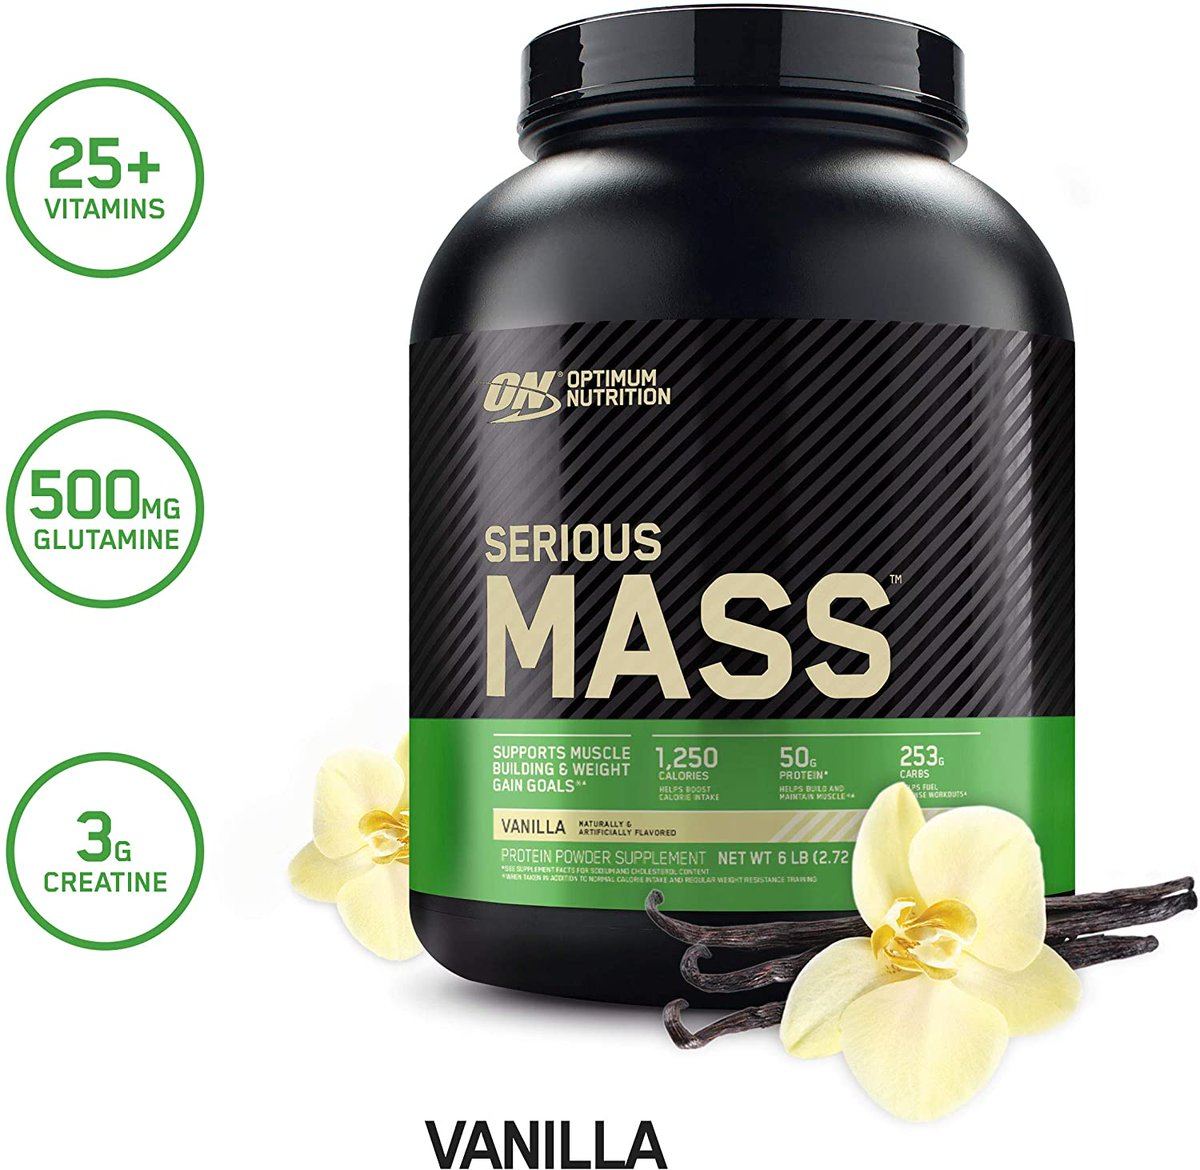 Keep the gains intact during this gym hiatus   6 POUNDS of OPTIMUM NUTRITION Serious Mass Weight Gainer for $32.14!!  https://amzn.to/3ehlDqN  #freebies #deals #deal #moneysaver #greatdeal #steals #discount #sale #bargain #bargainhunter #cheap #bestprice #AmazonDealspic.twitter.com/vBw0HEYhmj